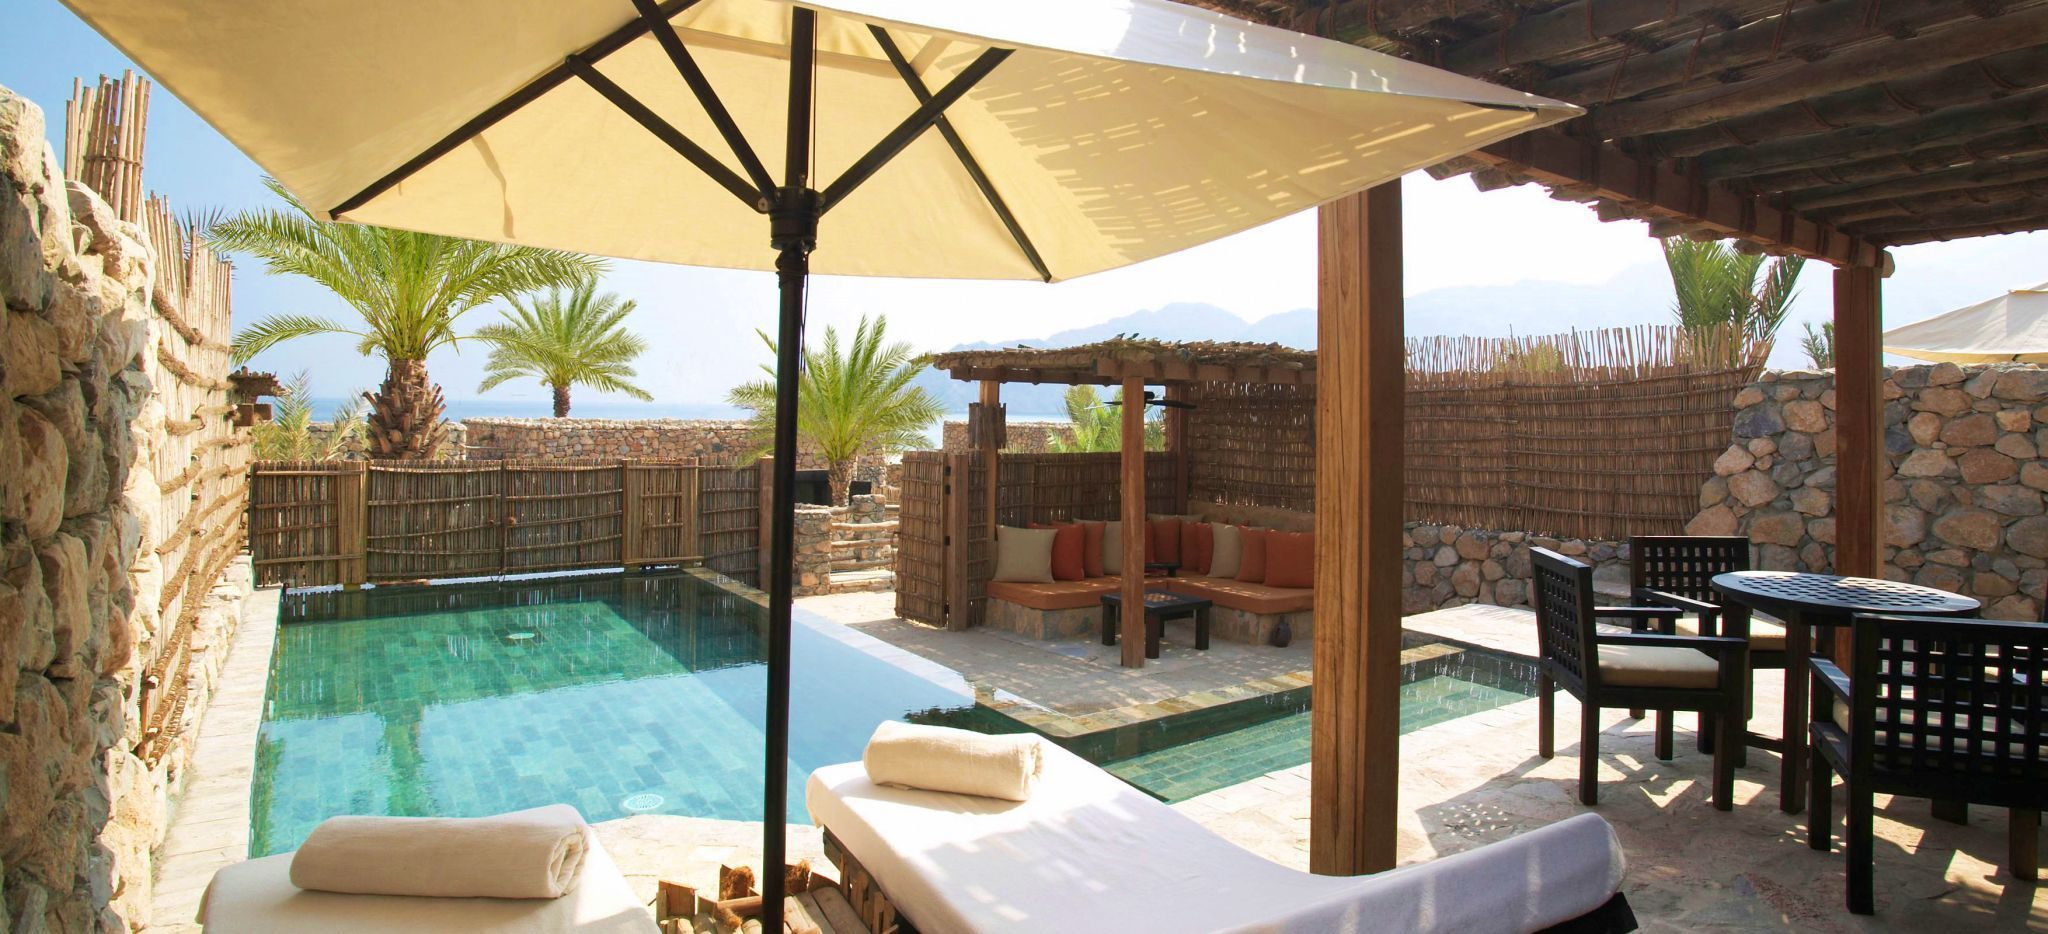 "Balkon und Privatpool der Poolvilla im Hotel ""Six Senses Zighy Bay"""